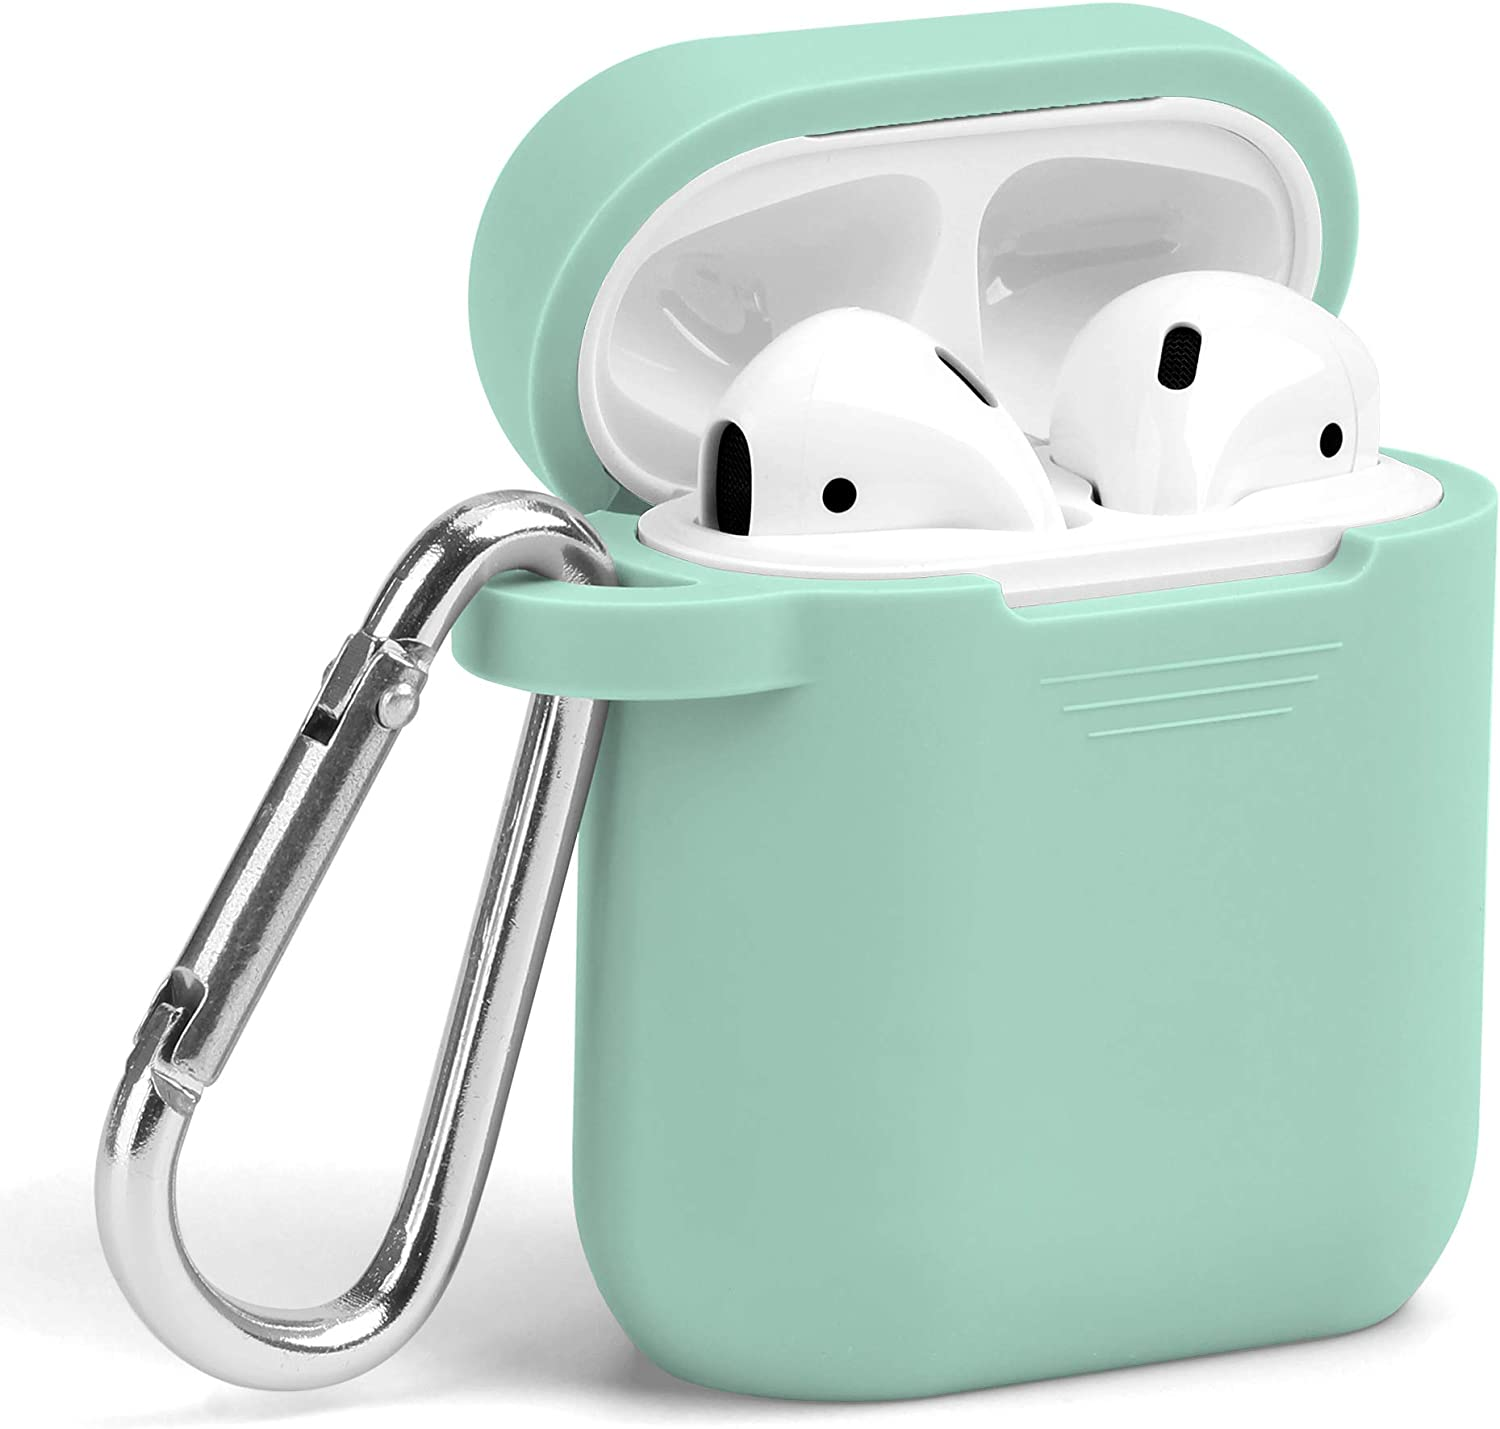 AirPods Case, GMYLE Silicone Protective Shockproof Wireless Charging Airpods Earbuds Case Cover Skin with Keychain Set Compatible for Apple AirPods 2 & 1 - Mint Green